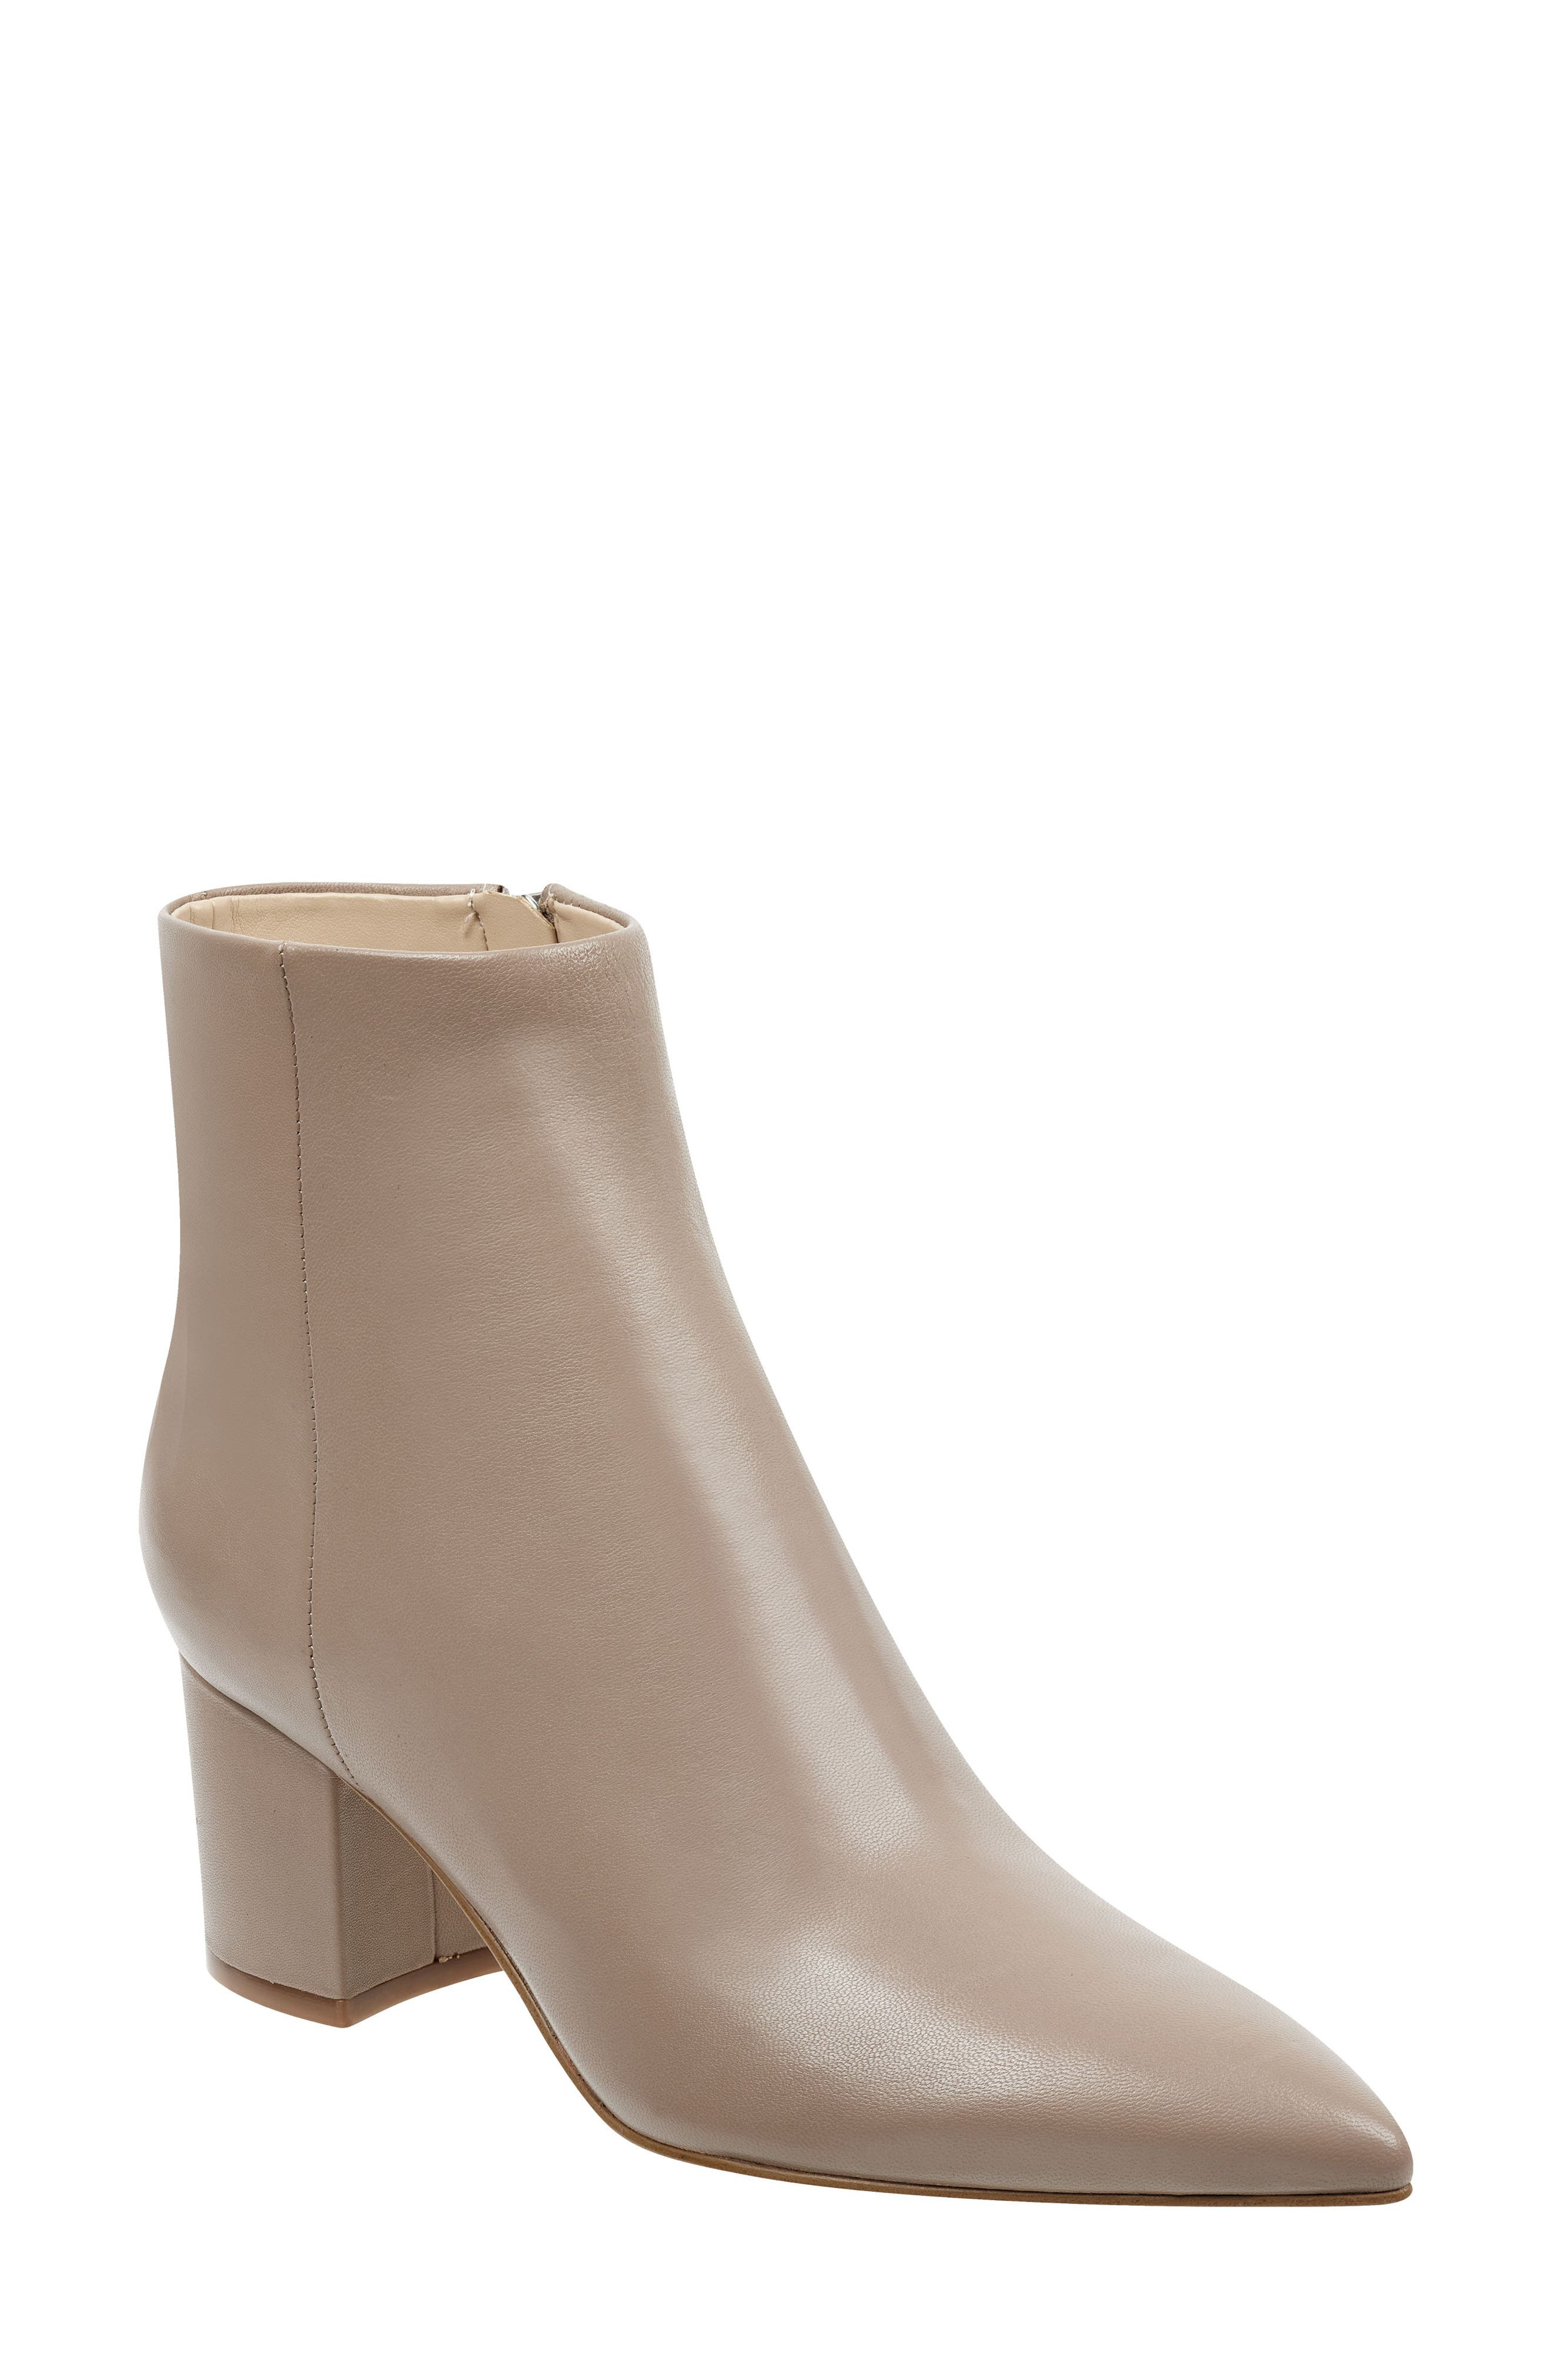 Jarli Bootie,                         Main,                         color, TAUPE LEATHER